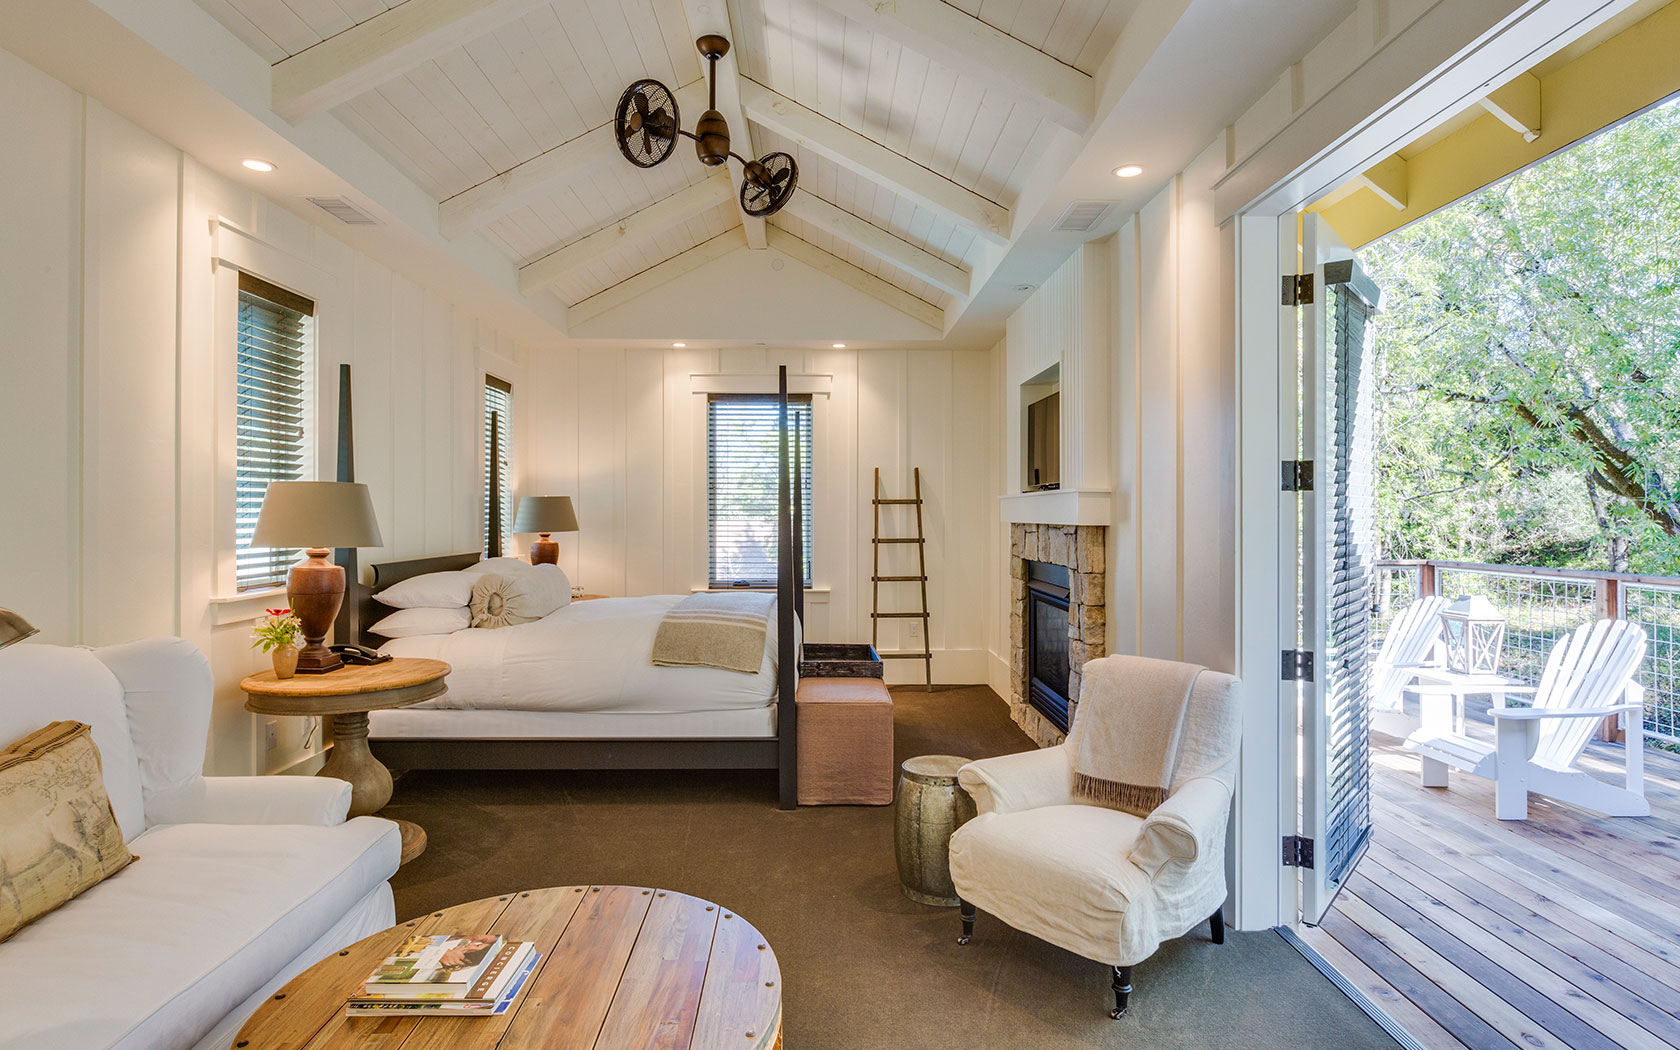 Stay in a luxurious Farmhouse Inn suite in Sonoma COunty, California